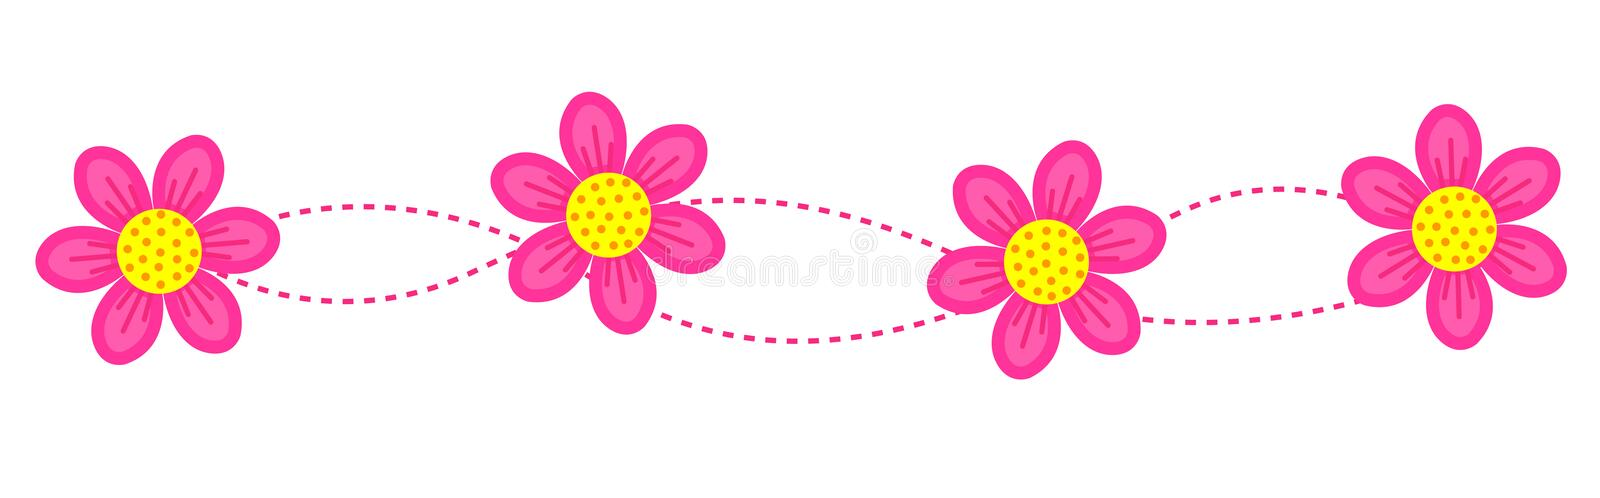 Download Floral Border / Frame / Divider Stock Photography - Image: 12209722